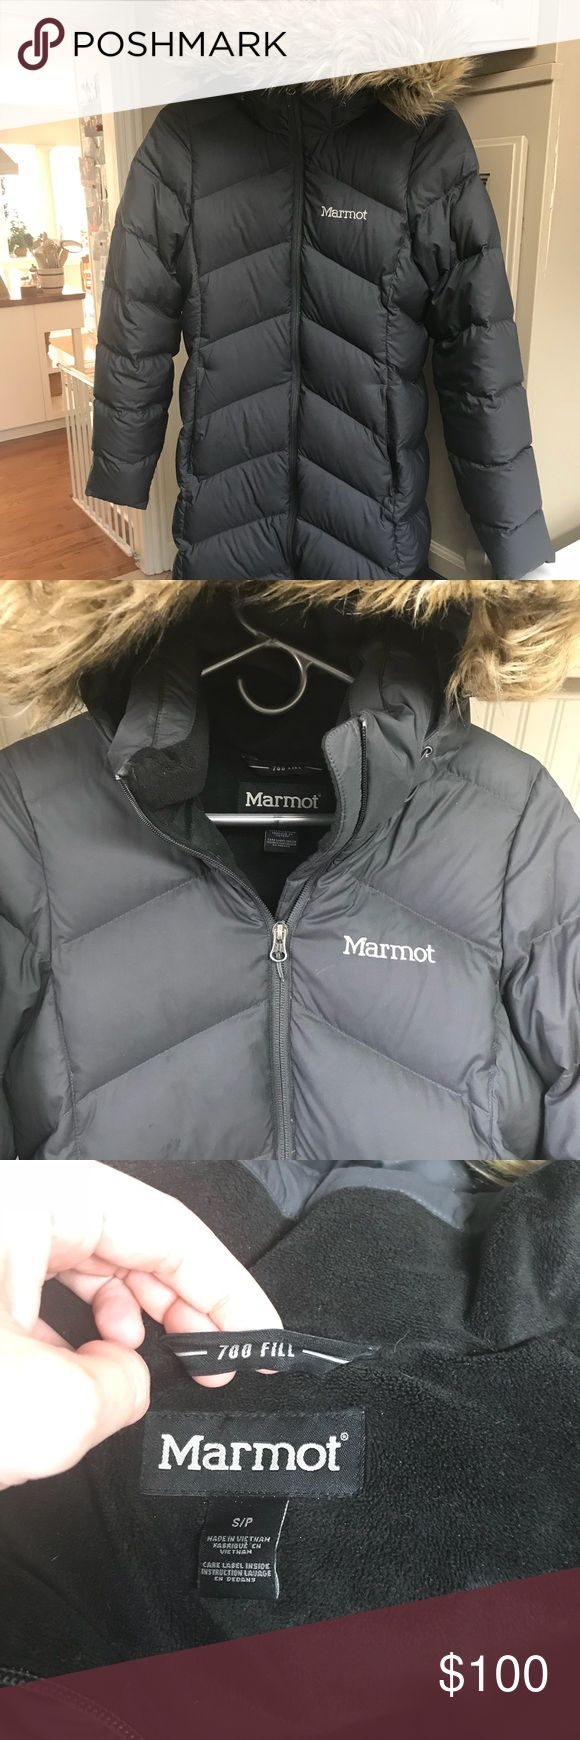 Women's Marmot down coat (coal) Women's size small, dark gray/coal colored. 700 goose down fill. Knee length, removable hood, zip pockets. So warm! Tiny little snag that's repaired on lower bottom right. $400 new, one owner, no smoking, clean. Marmot Jackets & Coats Puffers